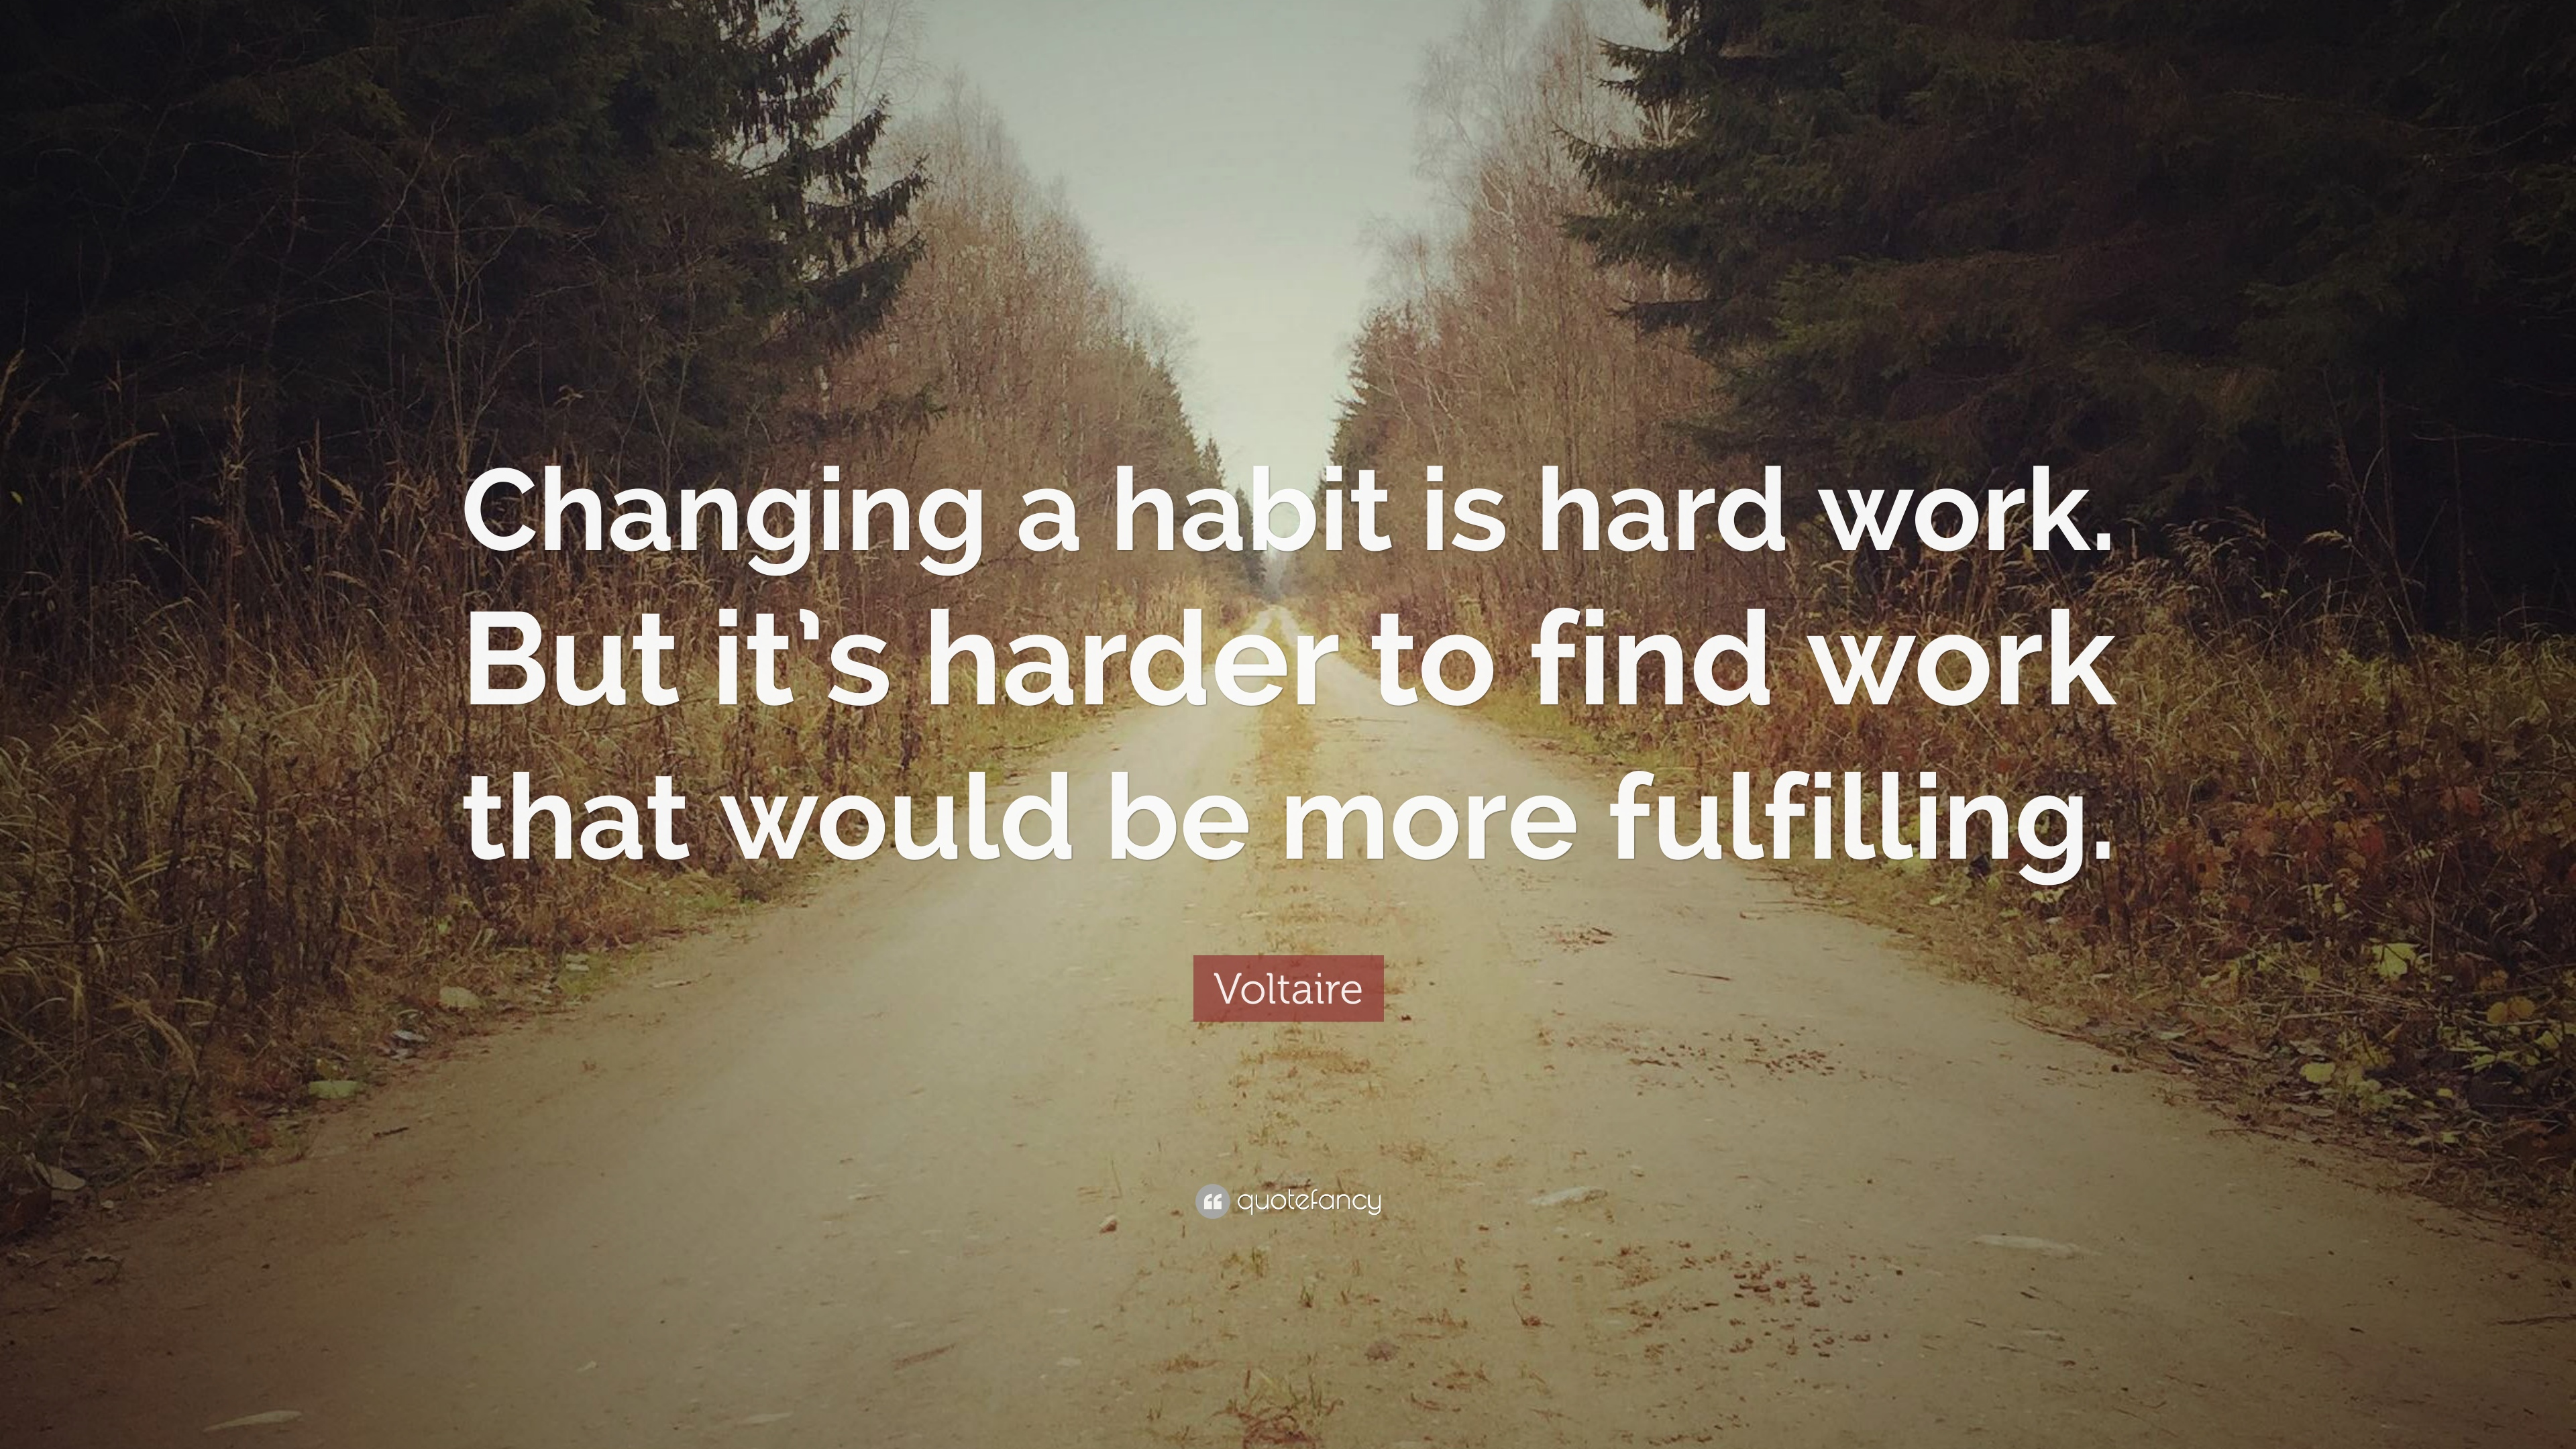 voltaire quote changing a habit is hard work but it s harder to voltaire quote changing a habit is hard work but it s harder to find